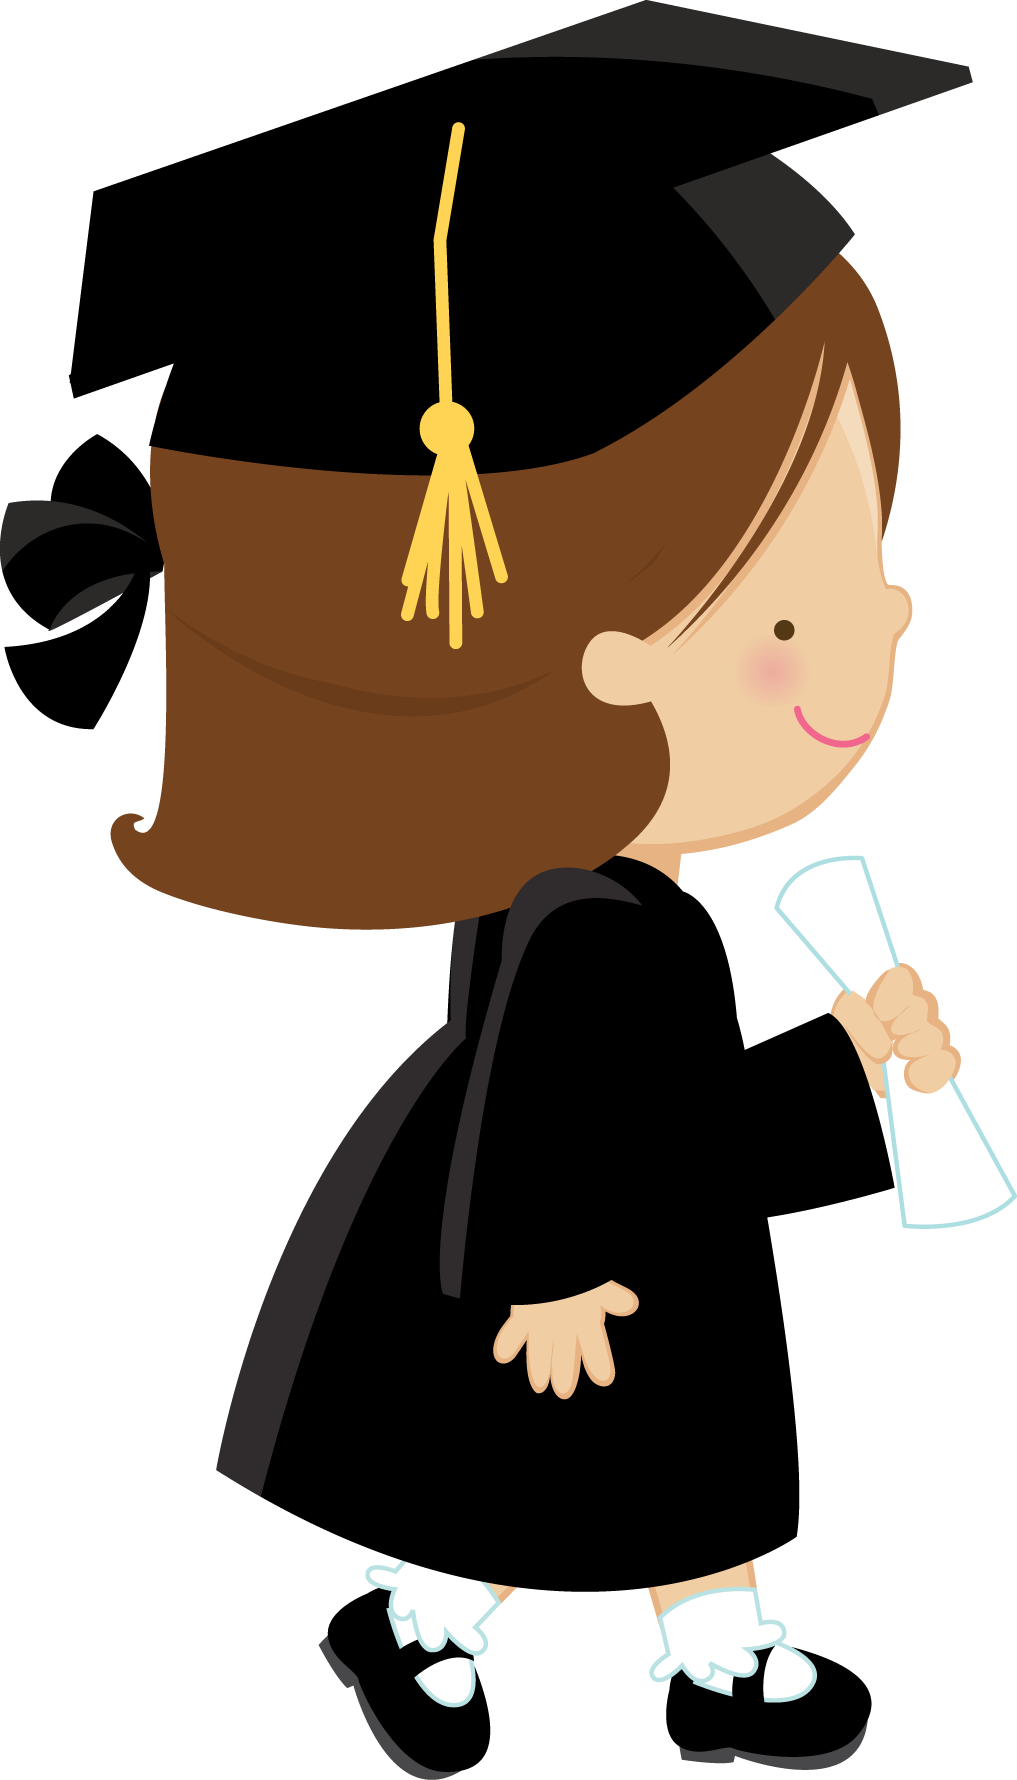 GRADUATION GIRL | Grคduคtion | Pinterest | Girls, Clip art and ... clip royalty free